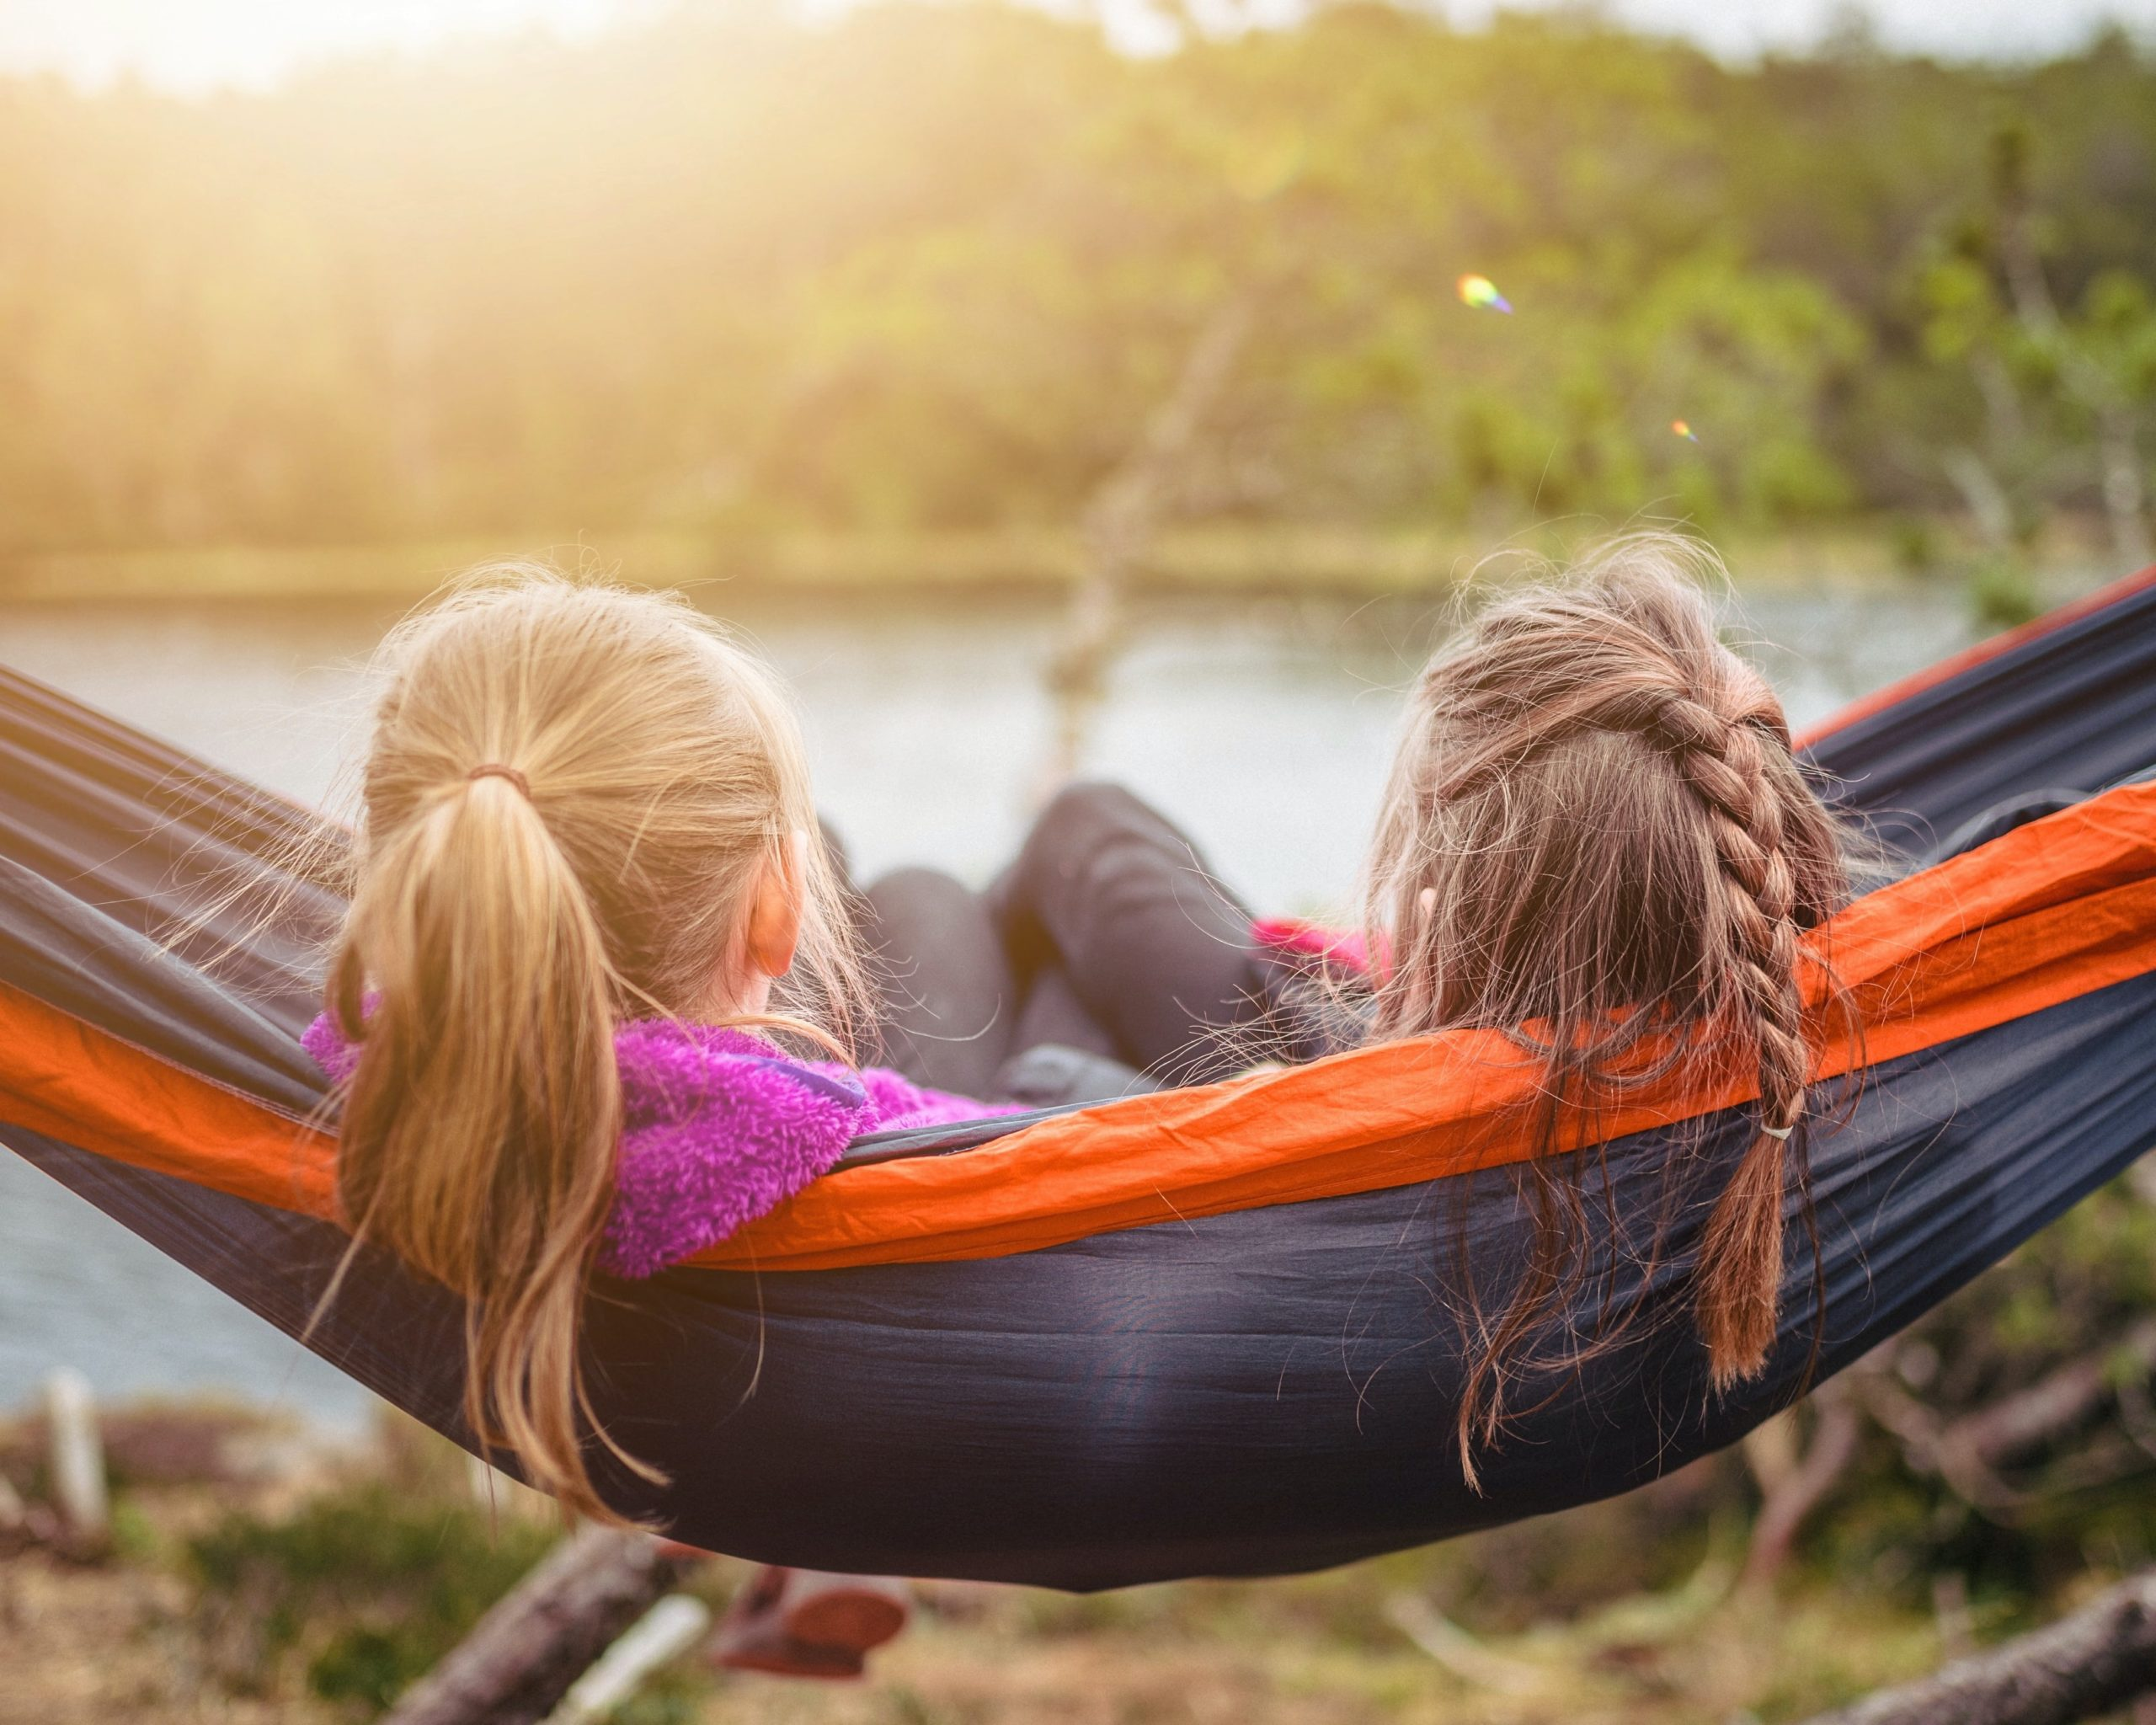 Two young girls on a hammock looking at a lake